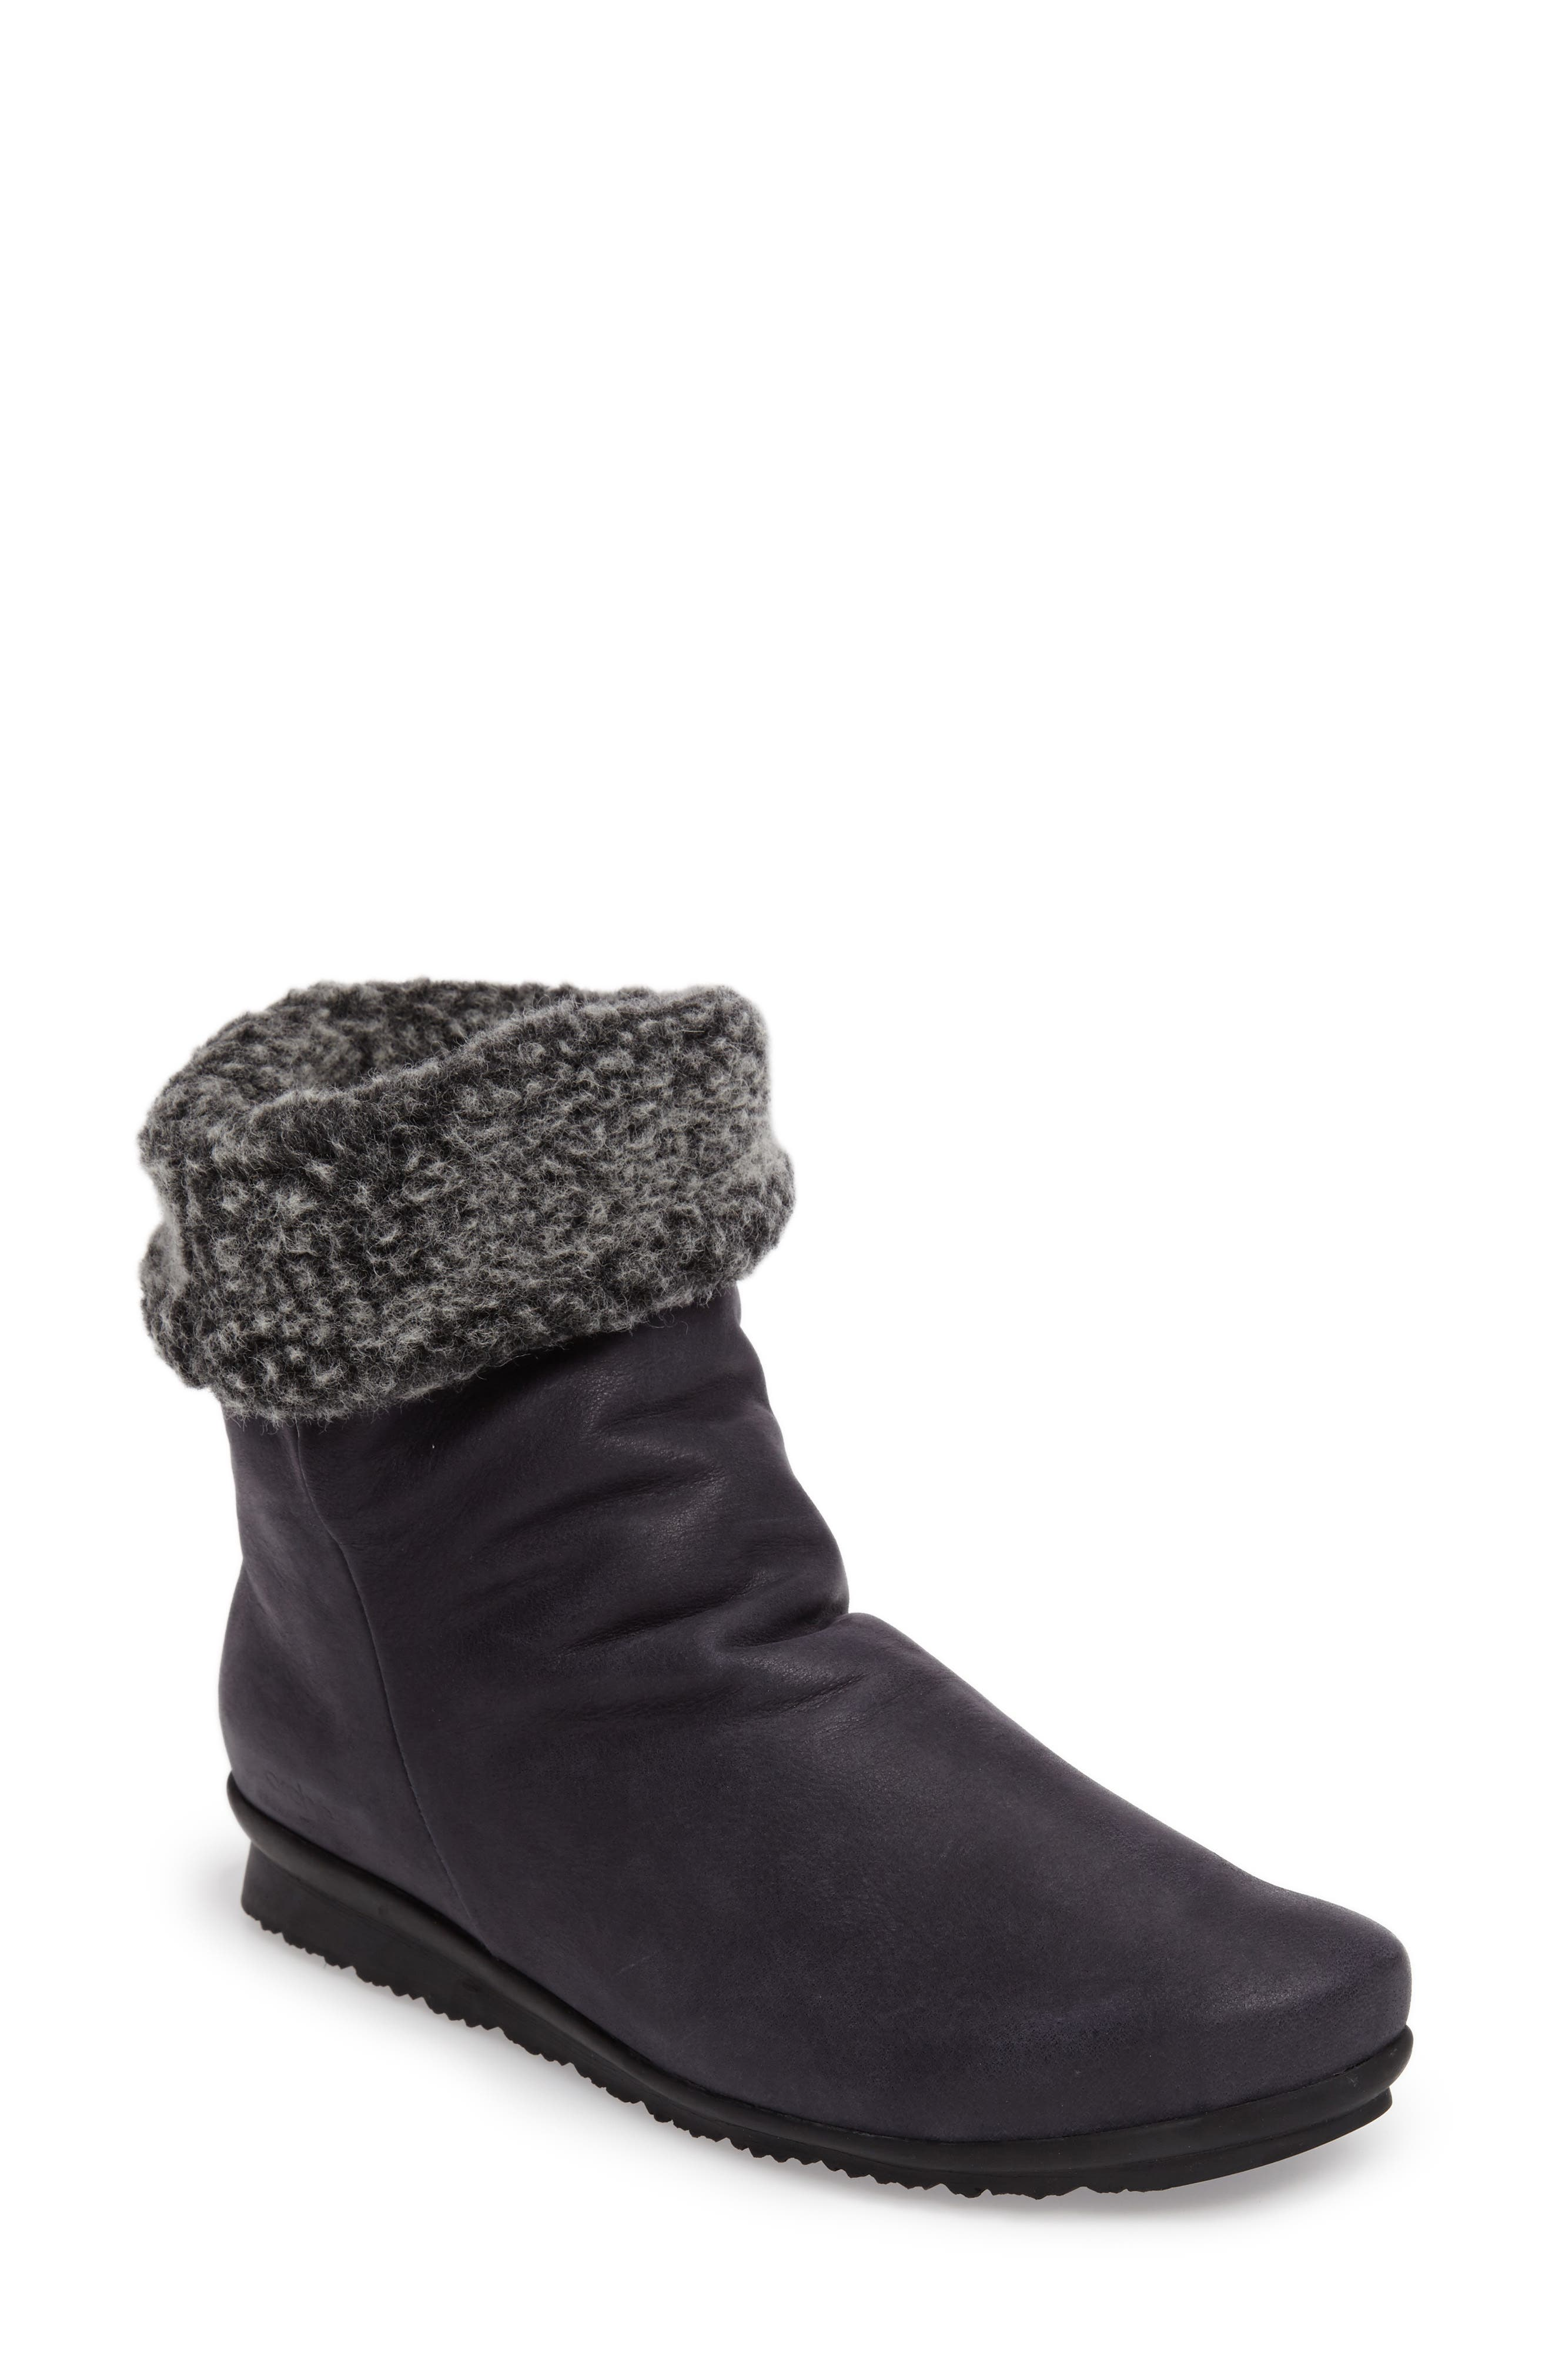 Barosa Faux Shearling Cuffed Bootie,                             Alternate thumbnail 2, color,